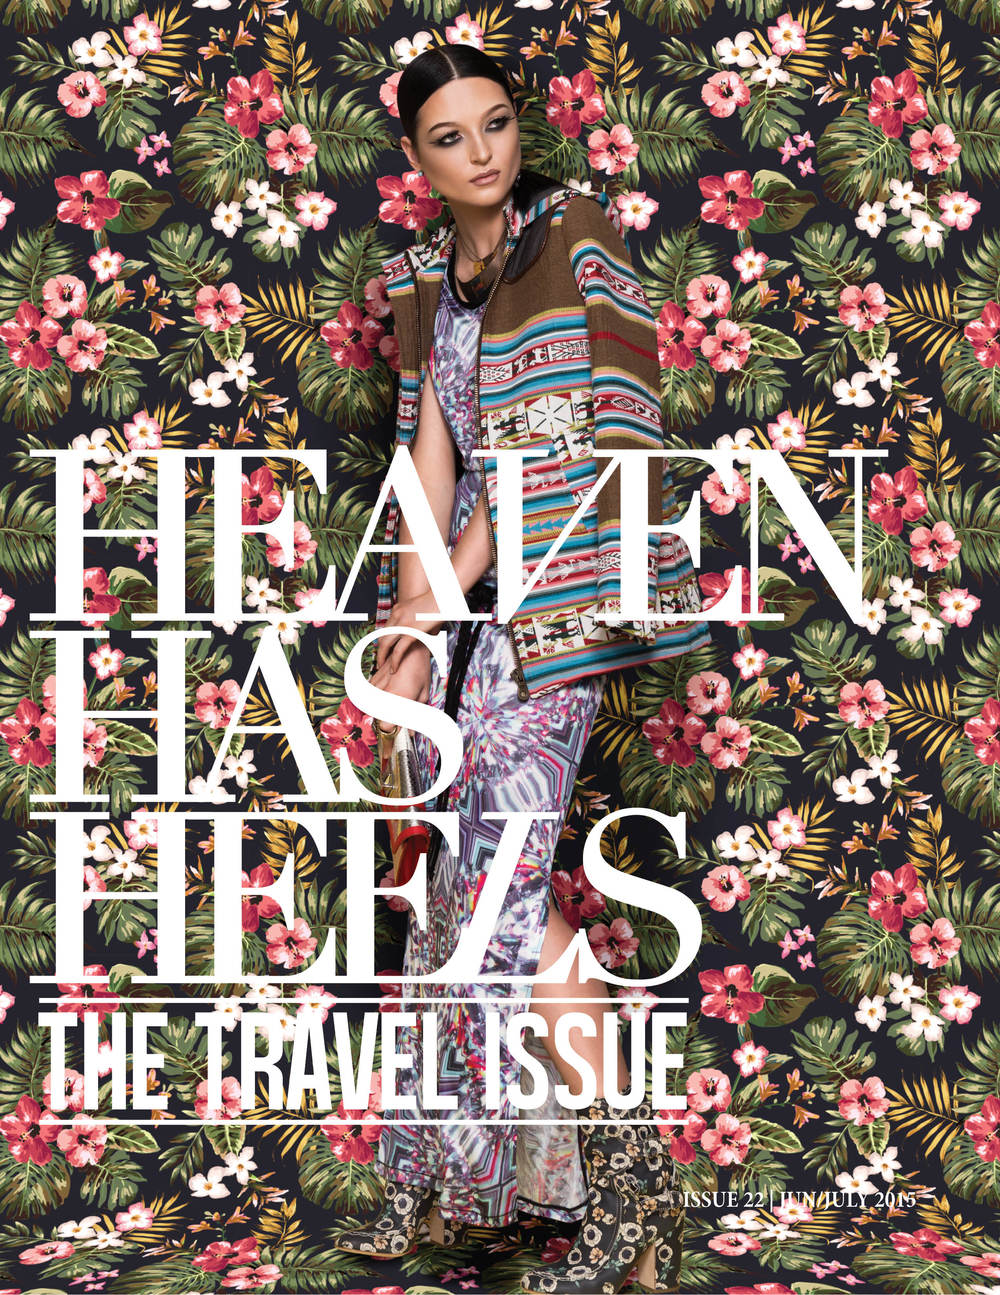 2015 Summer Issue Cover.jpg